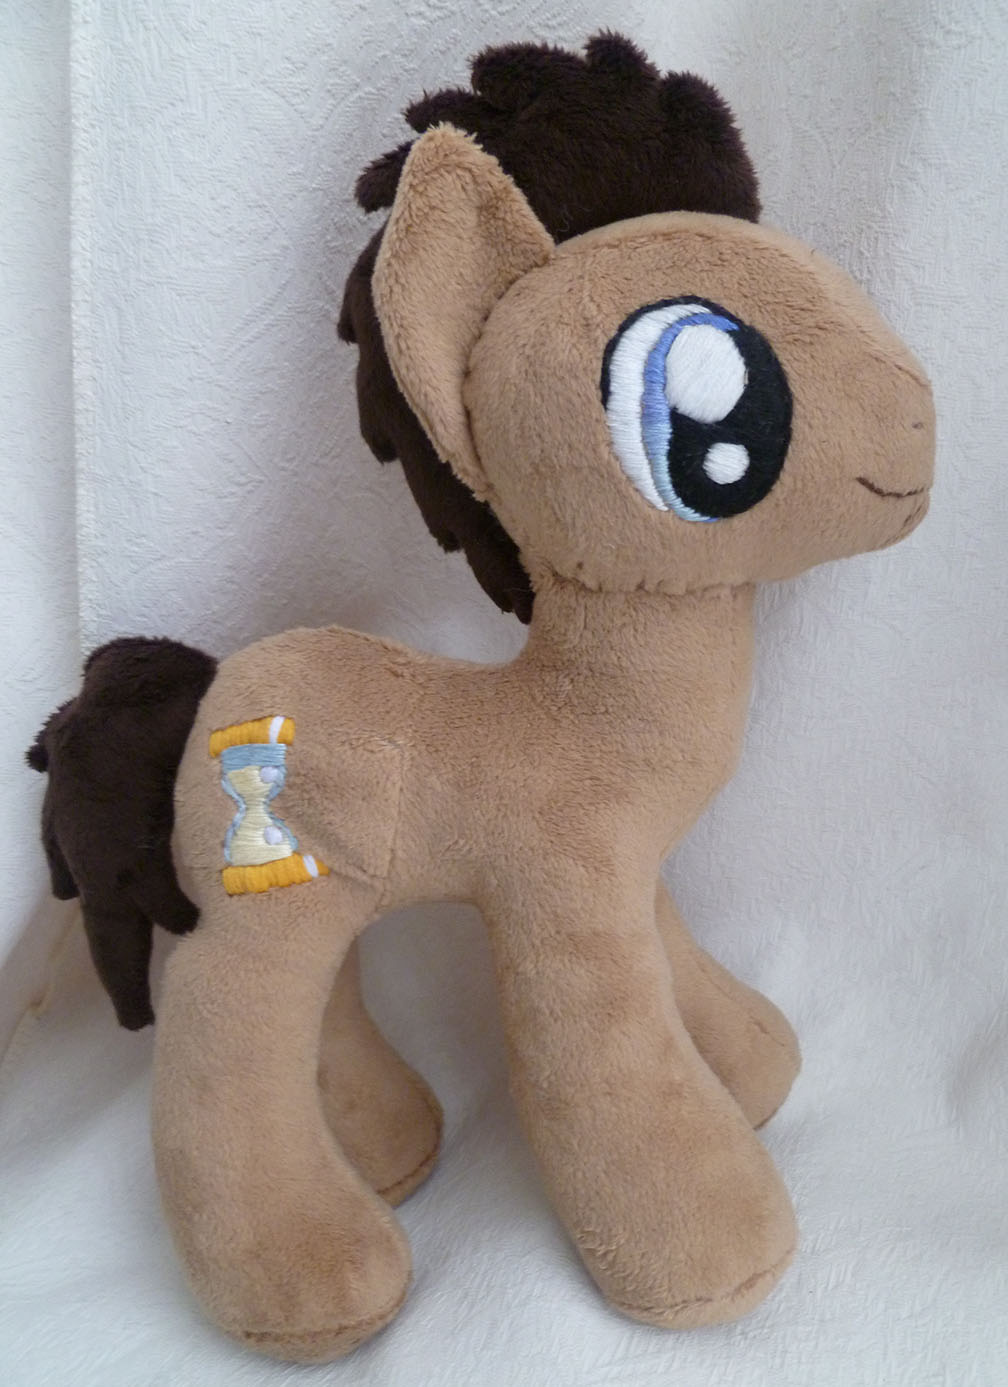 Dr. Whooves a.k.a Time Turner by caashley